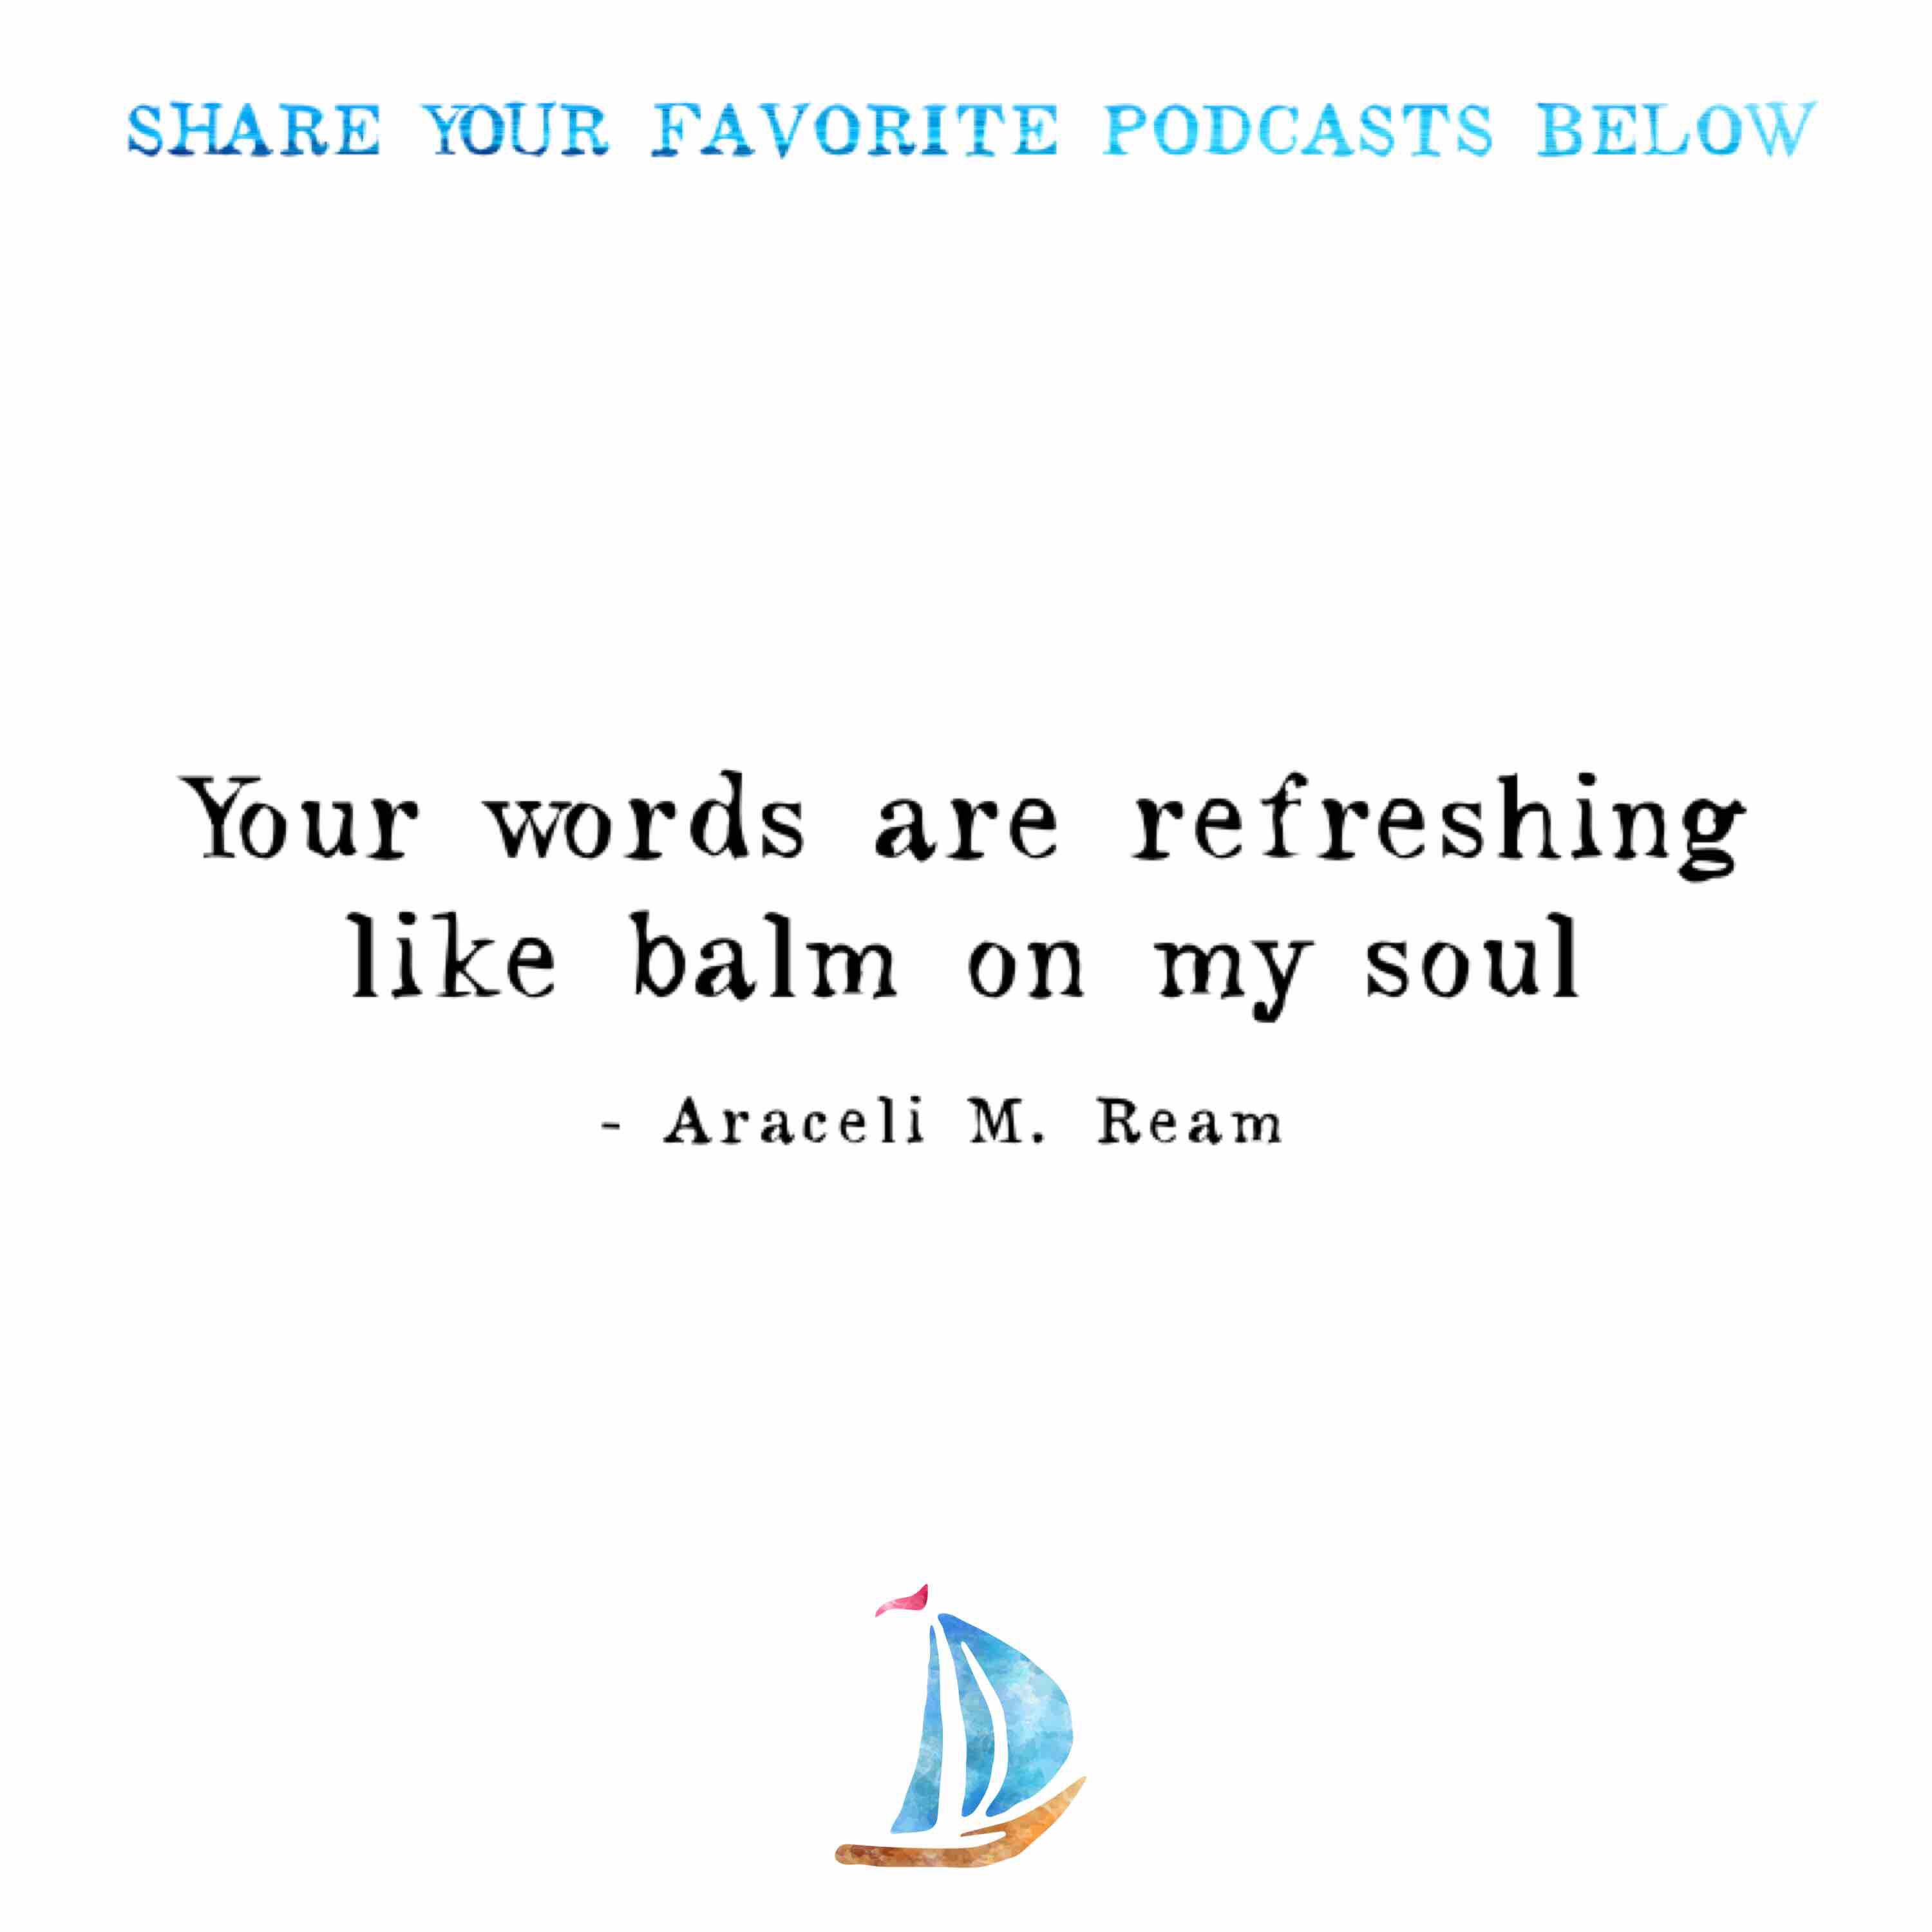 Image result for quotes about listening to podcasts